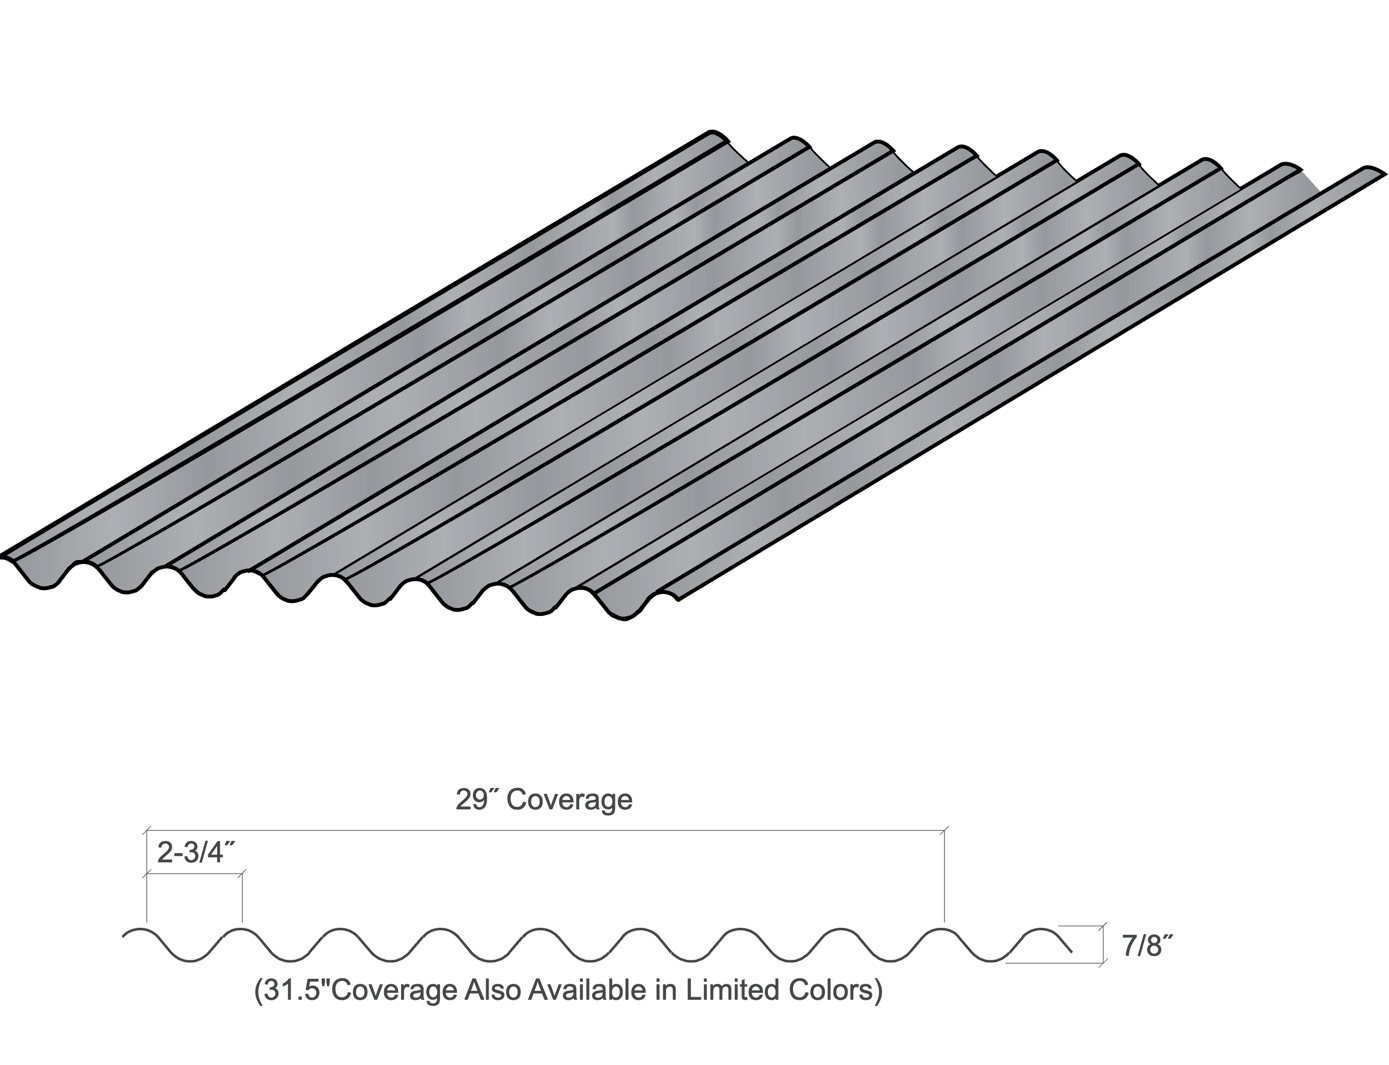 Diagram of corrugated panel roof with labeled measurements.